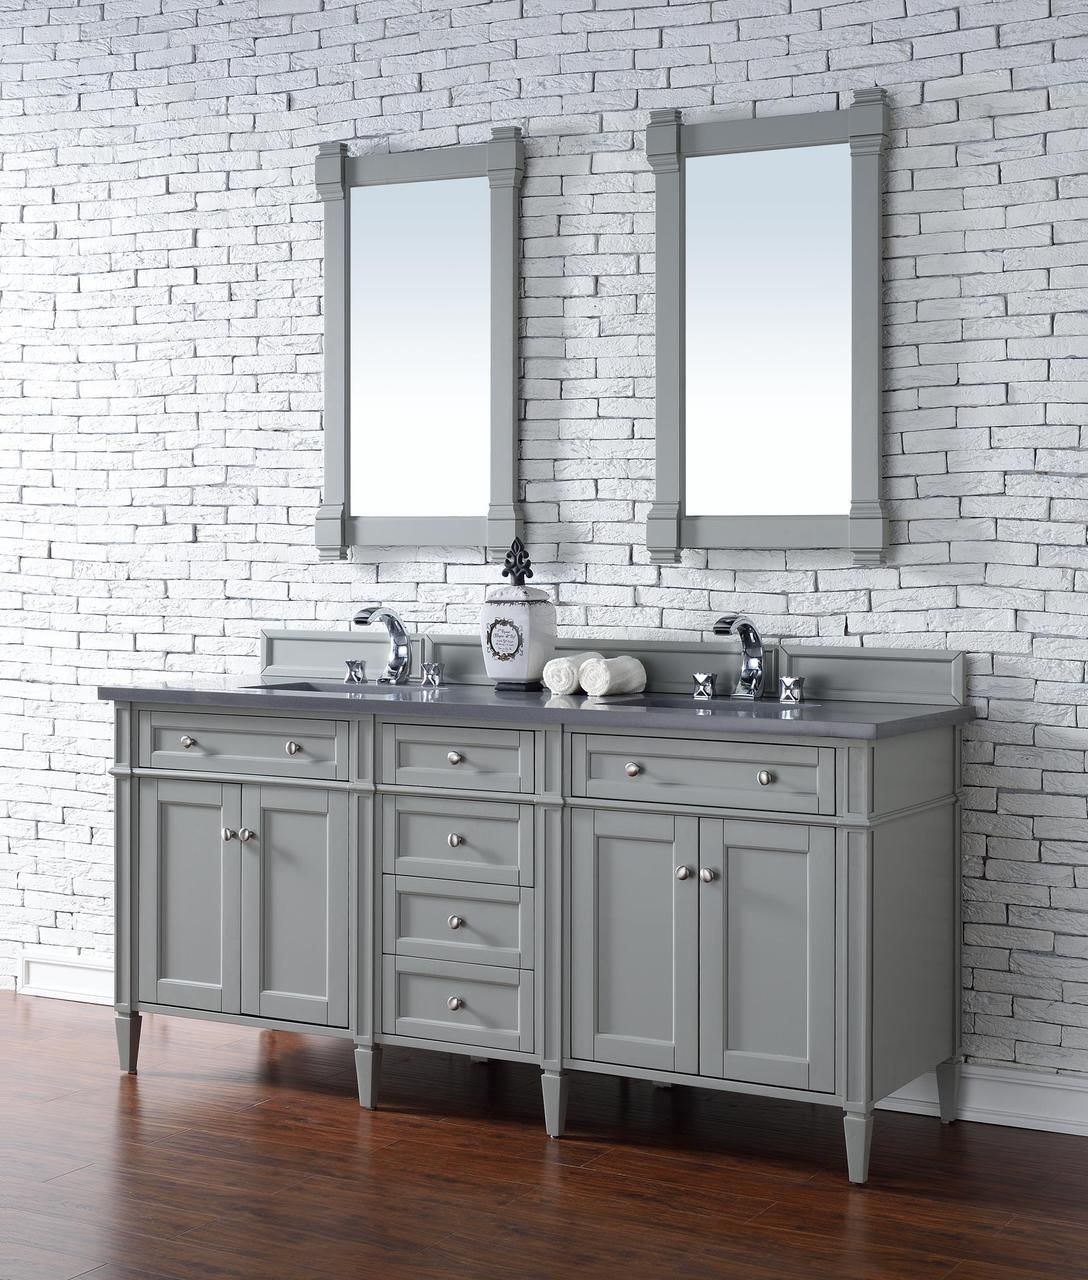 Lovely Cleaning Bathroom With Bleach And Water Big Choice Bathroom Shop Uk Regular Tile Backsplash In Bathroom Pictures Bathroom Modern Ideas Photos Old Bath And Shower Enclosures ColouredTiled Baths Showers 60 Inch White Bathroom Vanity Without Top   Rukinet